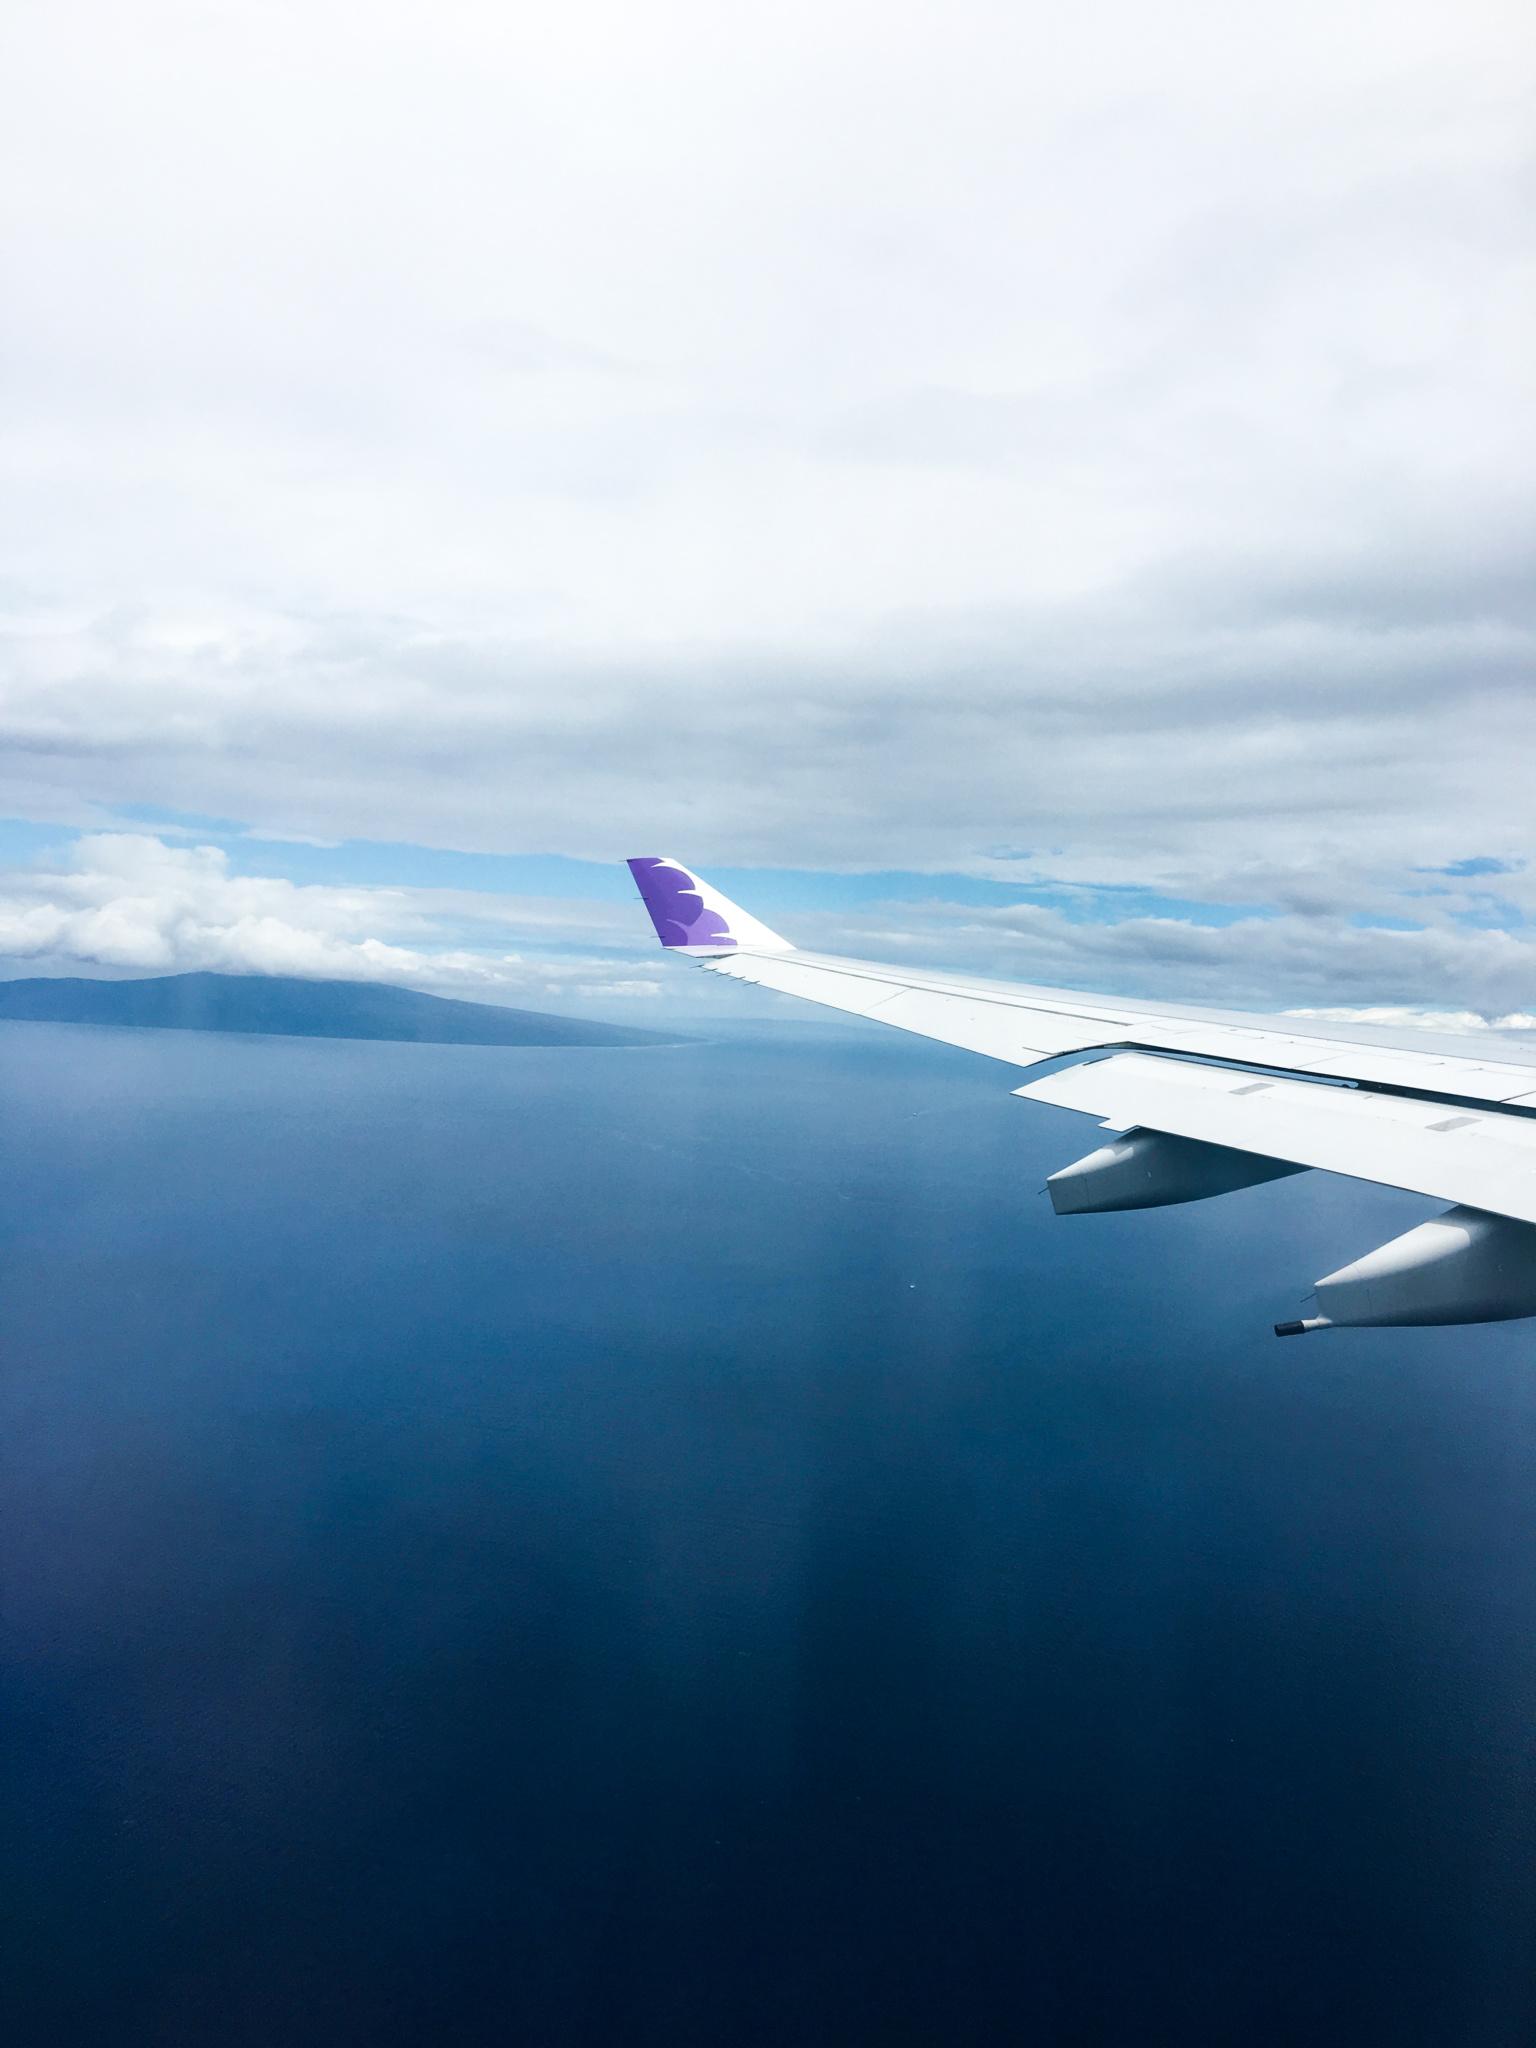 Hawaiian Airlines Flight Over Maui Hawaii - Kahului Airport OGG Maui International Airport - The Killer Look Travels - KillerTravel - Killer Travel - Steven Killian - TheKillerLook.com - The Killer Look